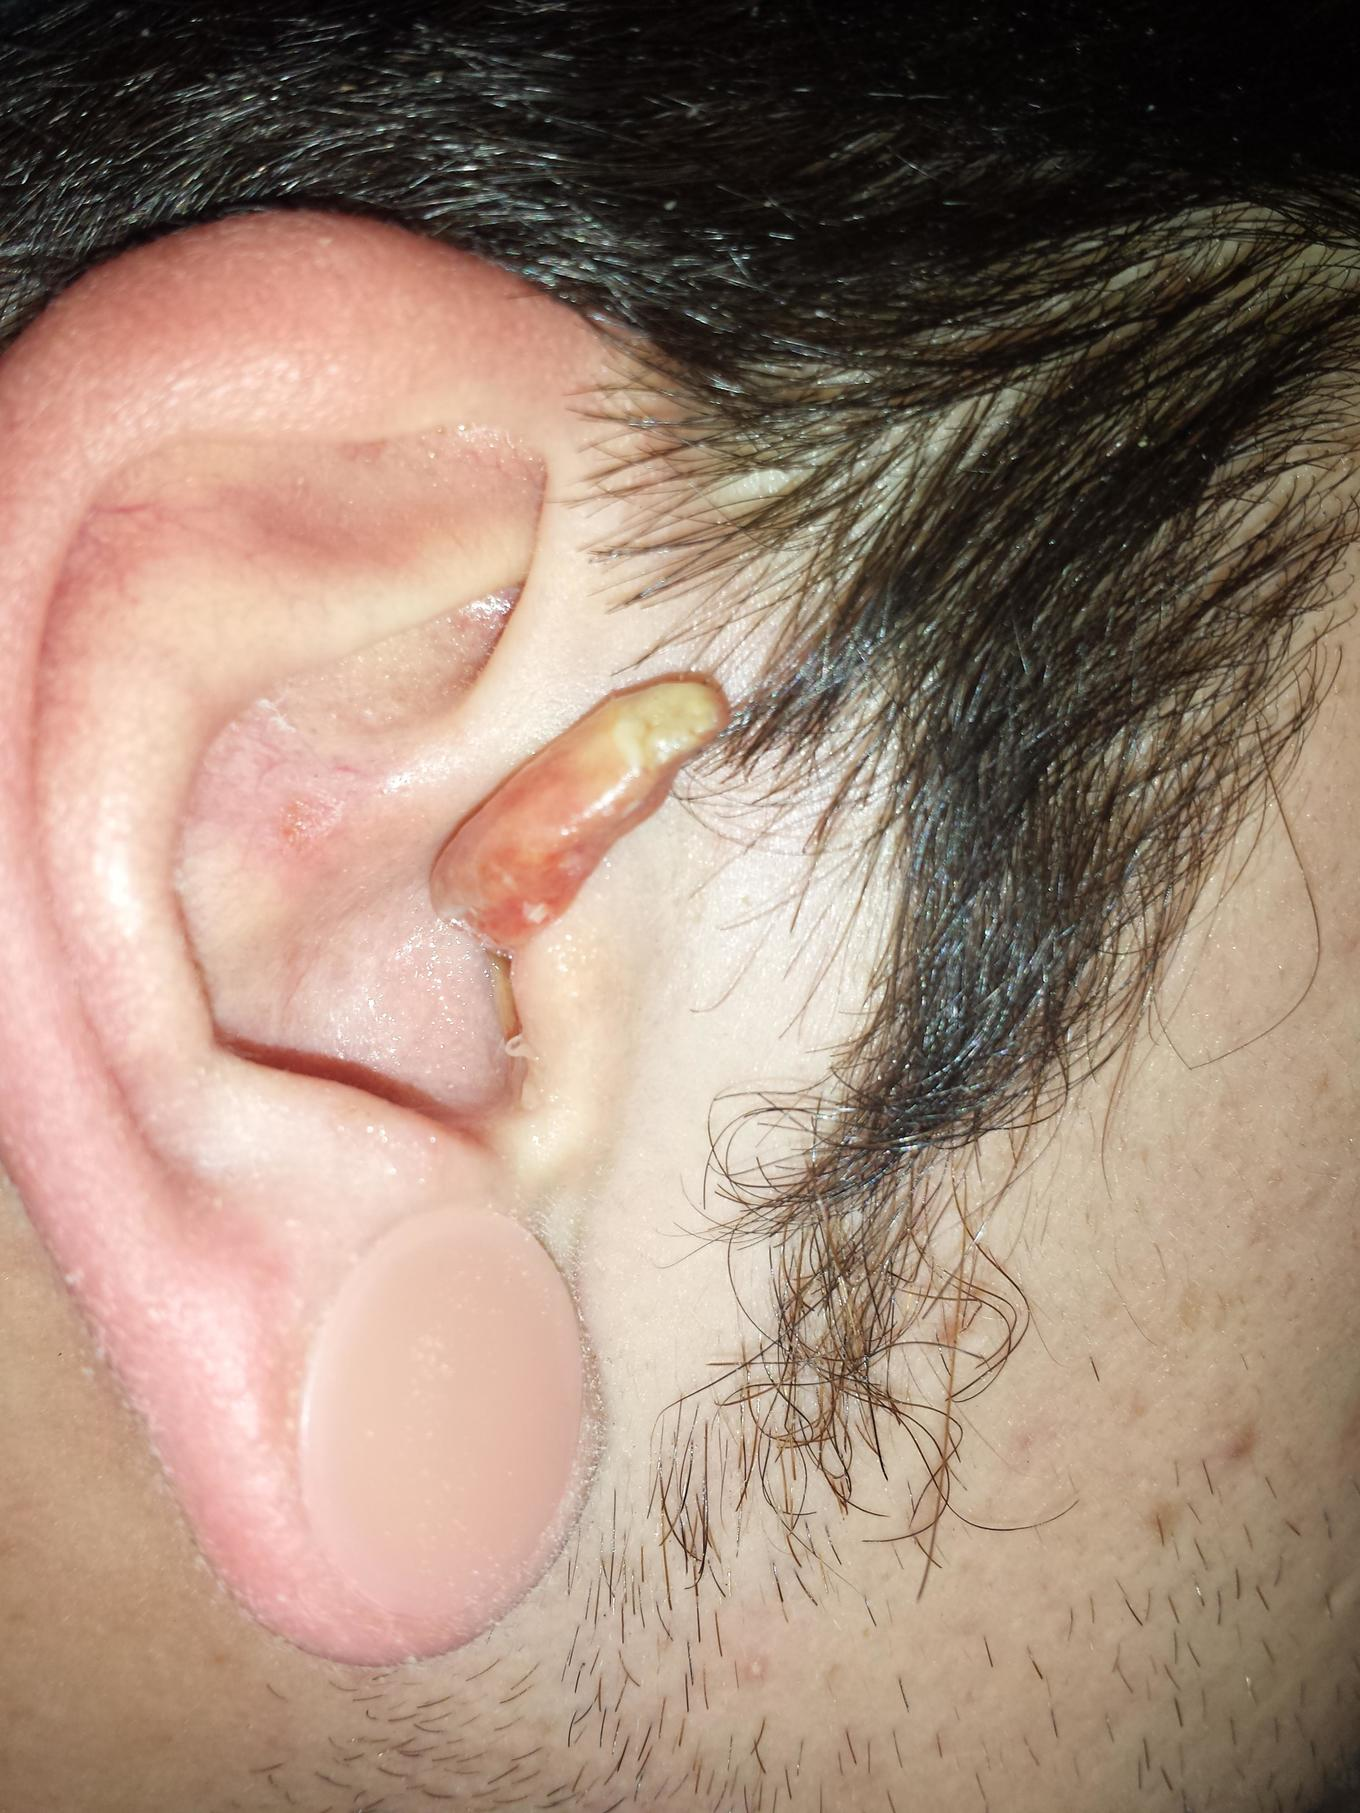 Ear Infection 7